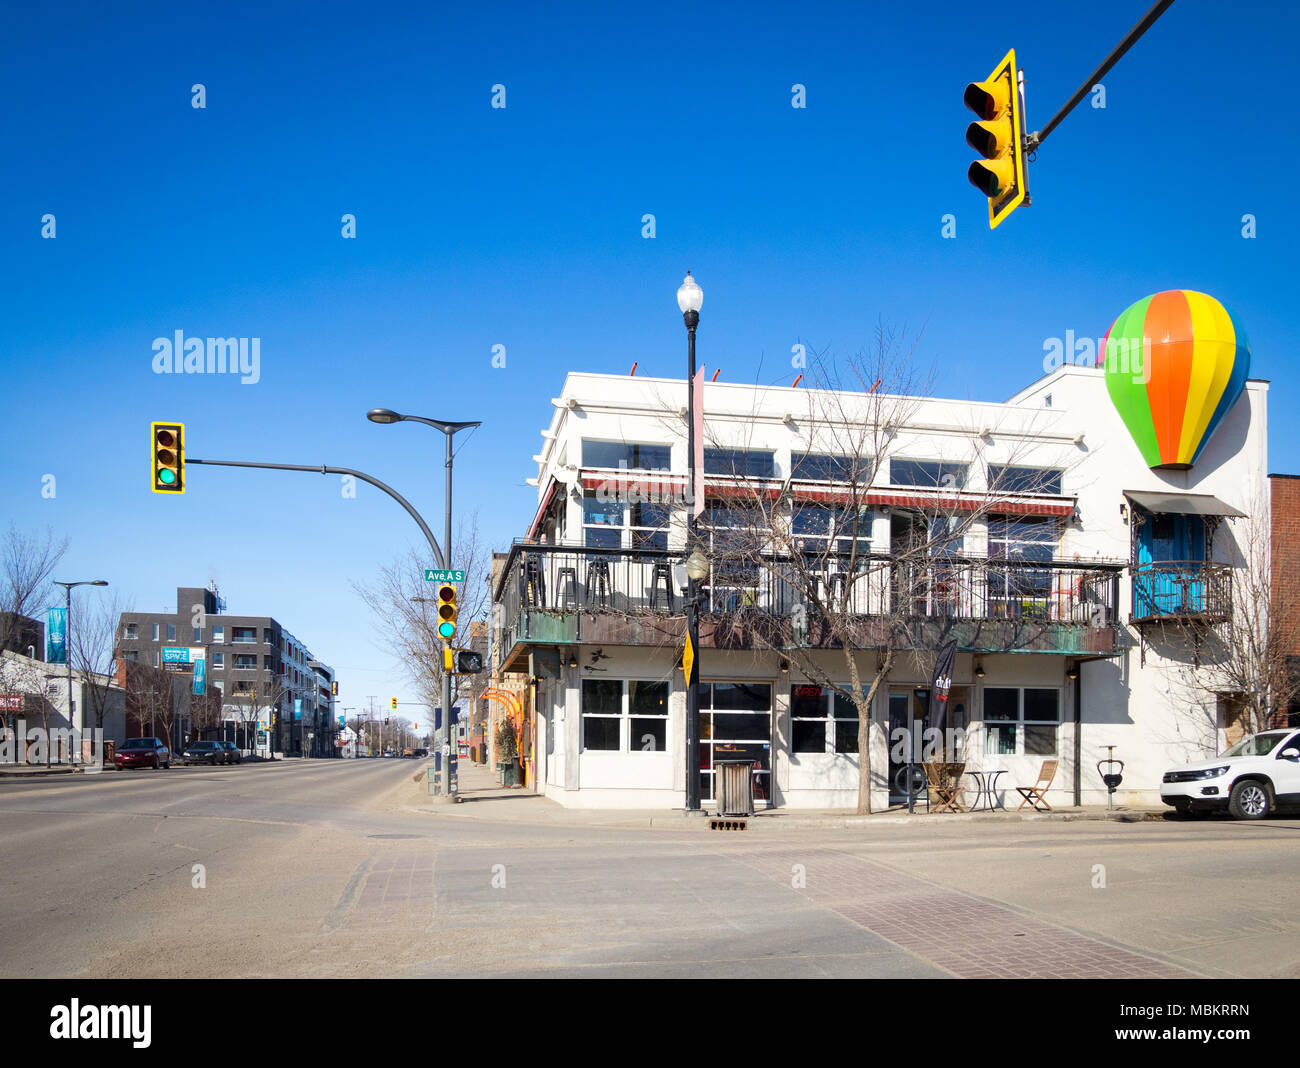 A view of the exterior of the Drift Sidewalk Cafe and Vista Lounge, and the trendy Riversdale District of Saskatoon, Saskatchewan, Canada. - Stock Image